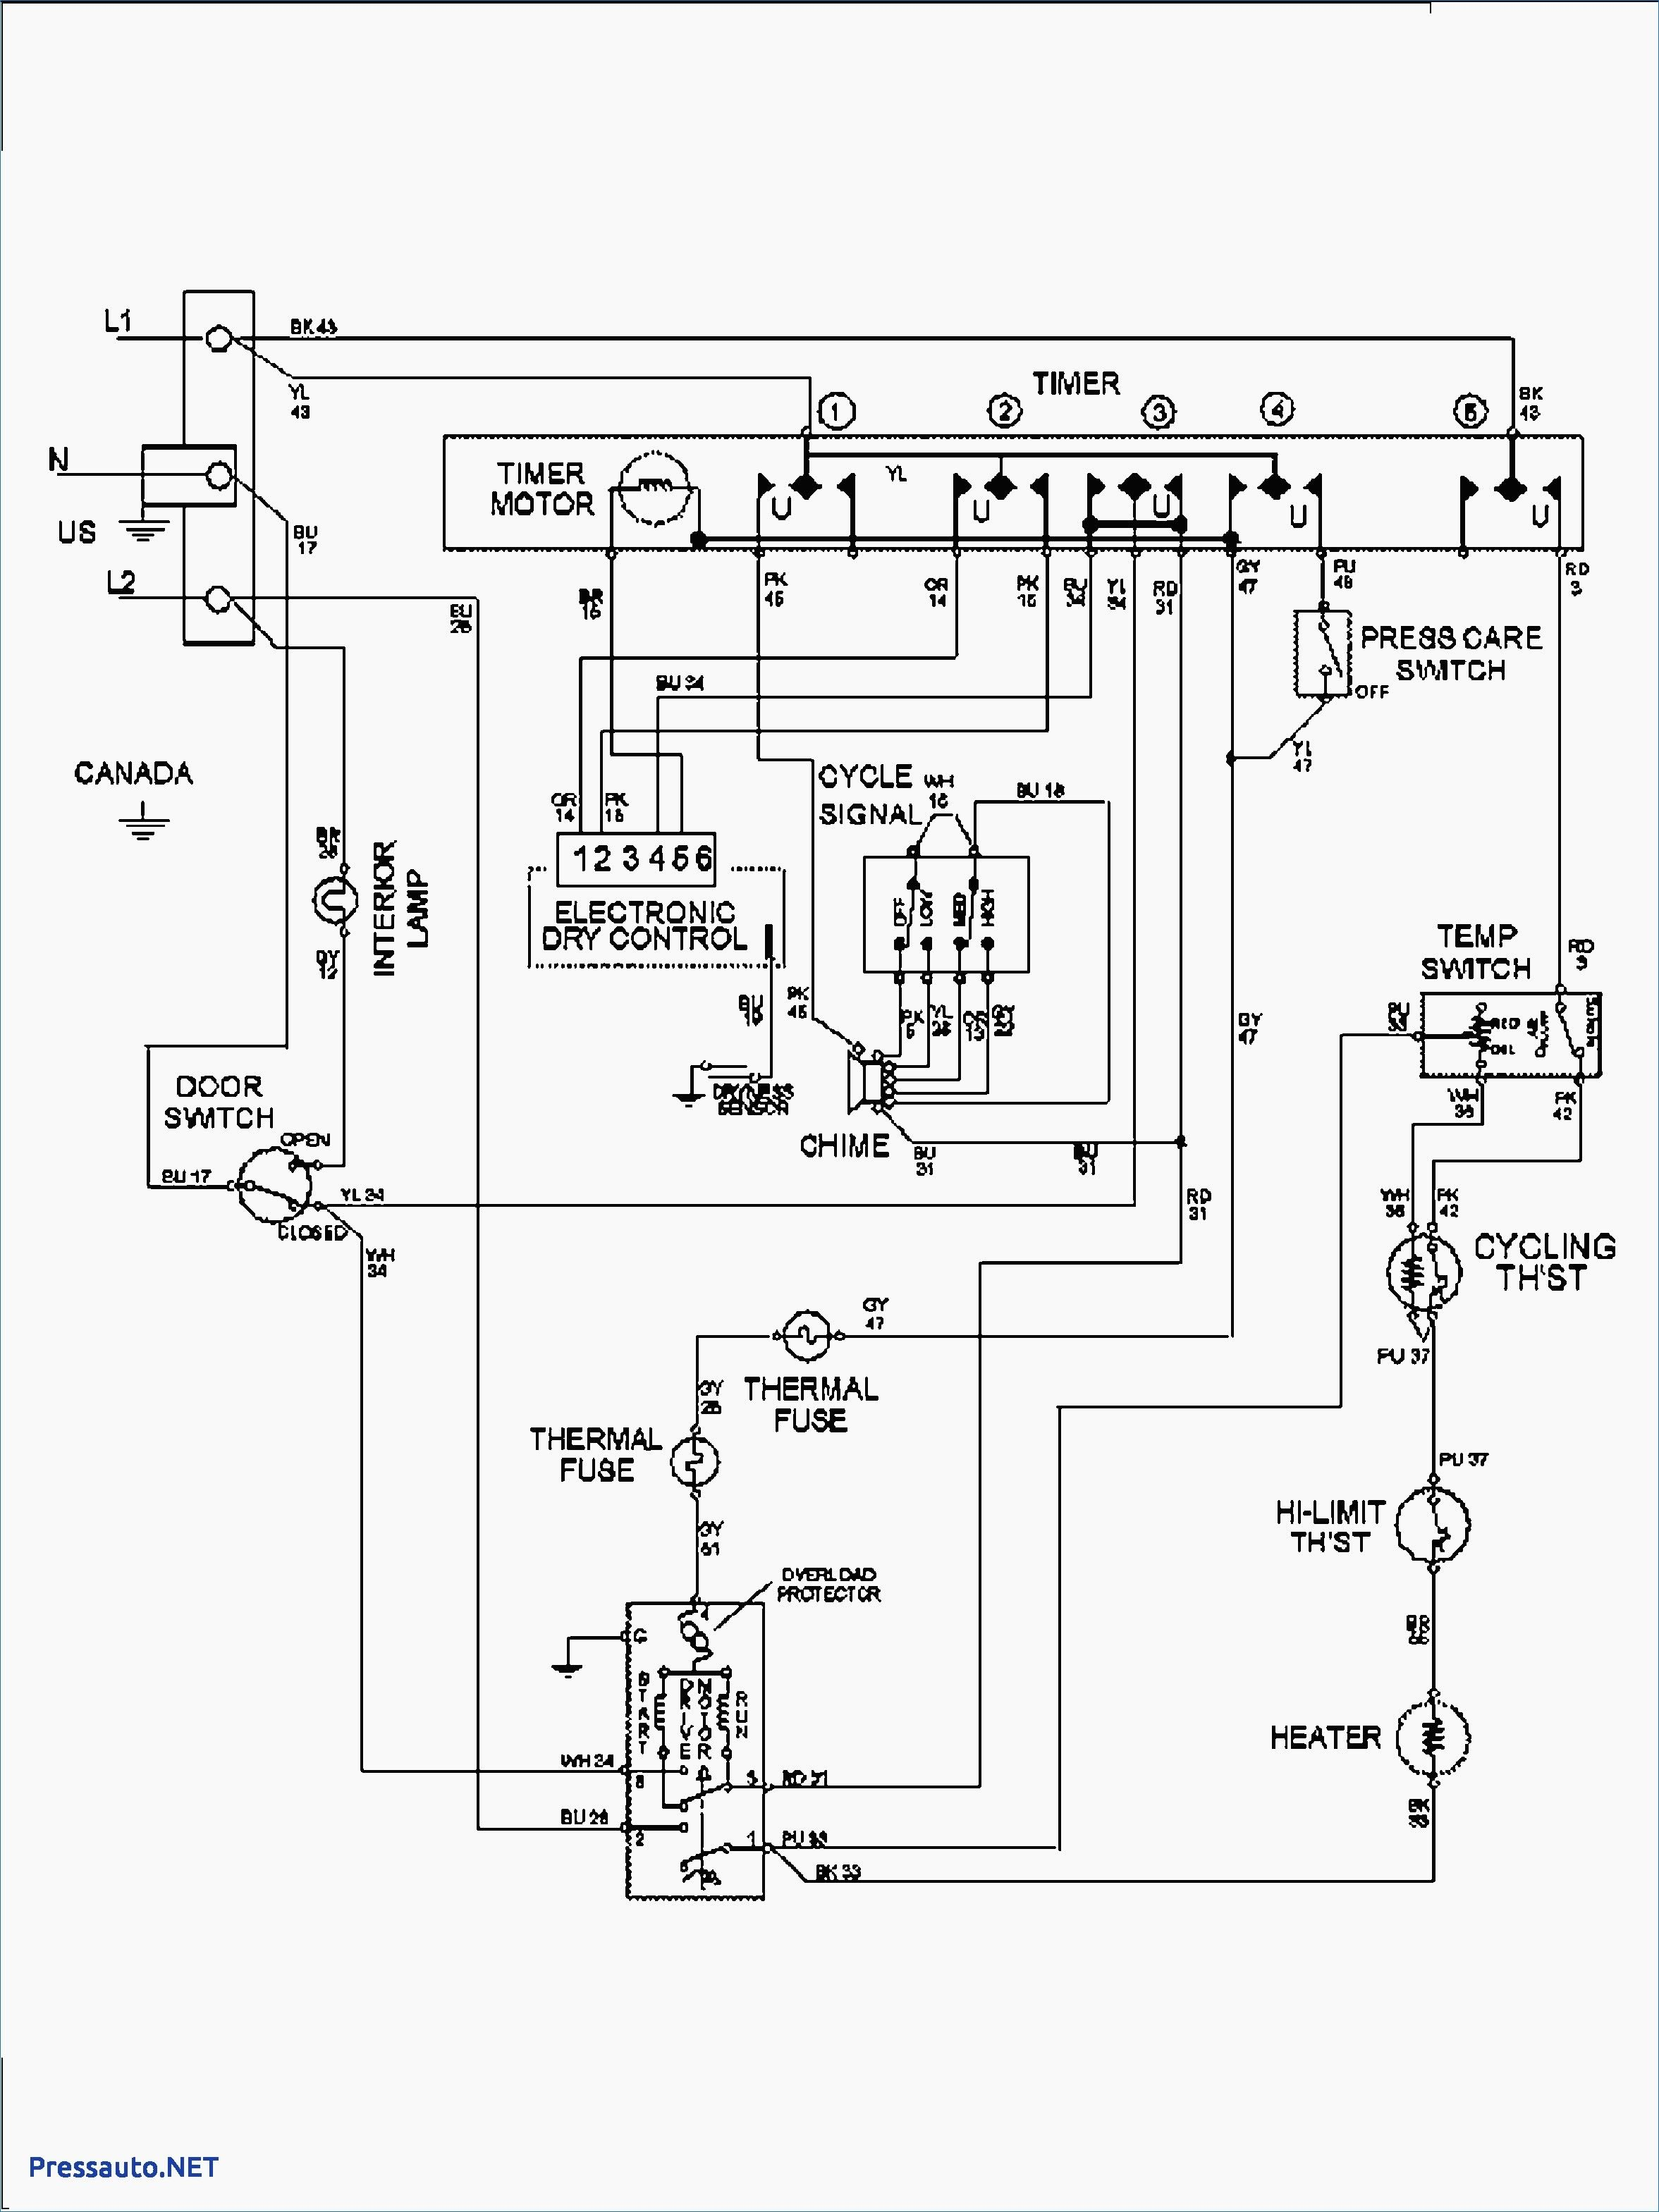 Wiring Diagram Of Washing Machine , http://bookingritzcarlton.info/wiring- diagram-of-washing-... | Electric dryers, Maytag dryer, Washing machine and  dryerPinterest